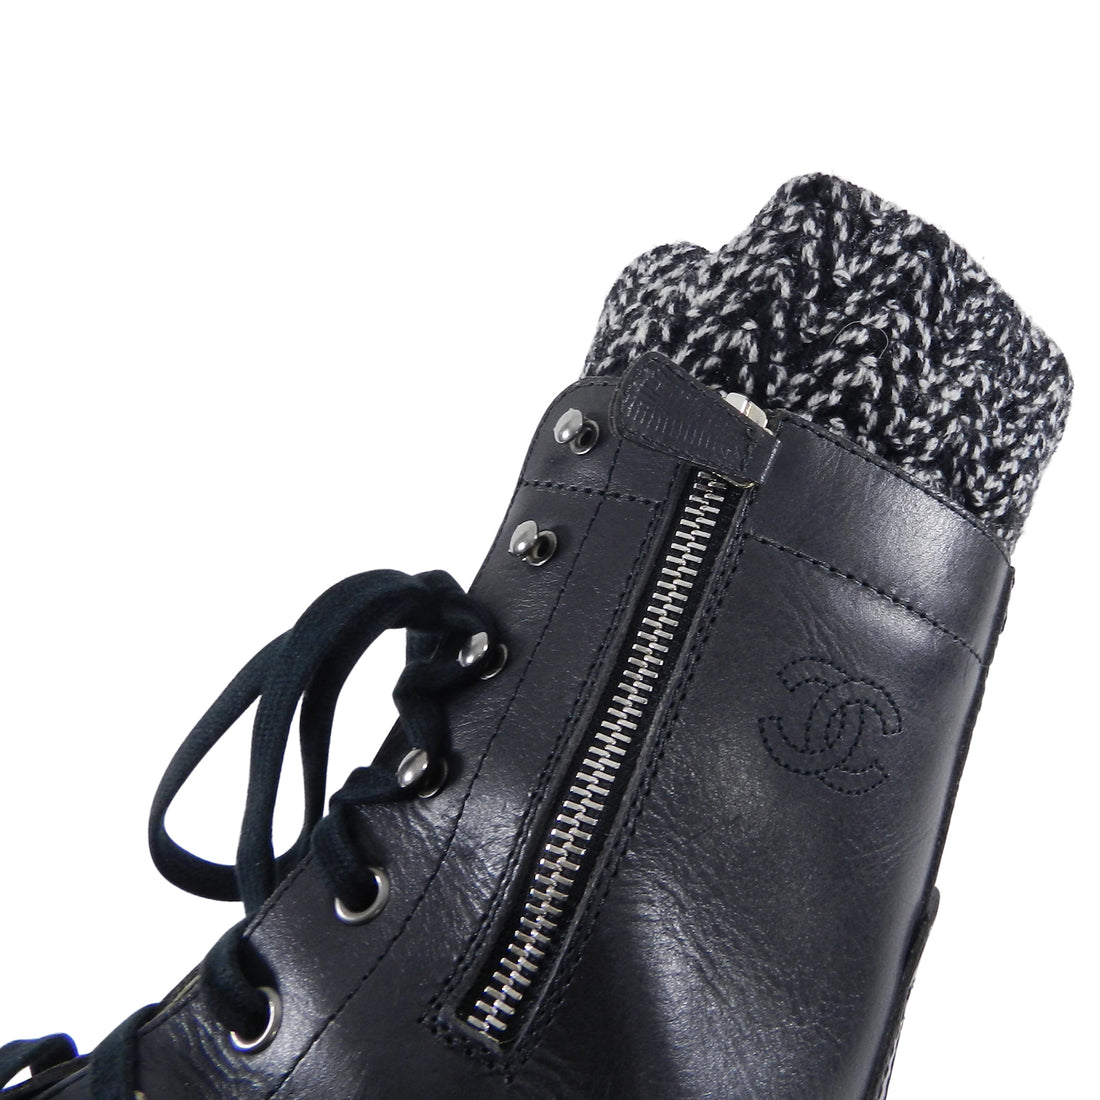 Chanel Fall 2011 Black Combat Boots With Knit Inset - 41